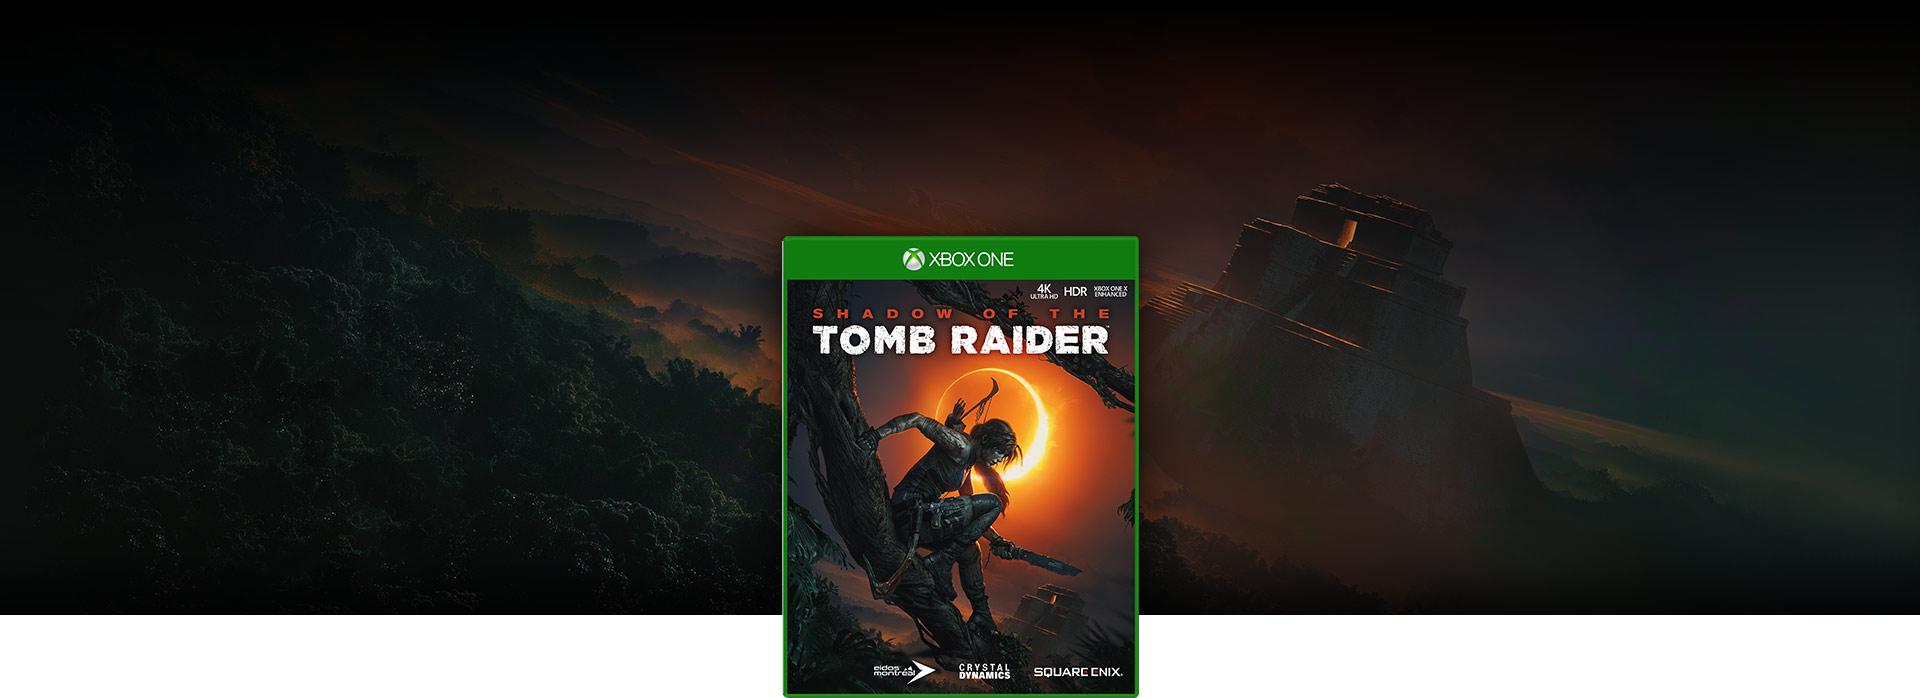 Shadow of the Tomb Raider boxshot, Jungle temple in the background